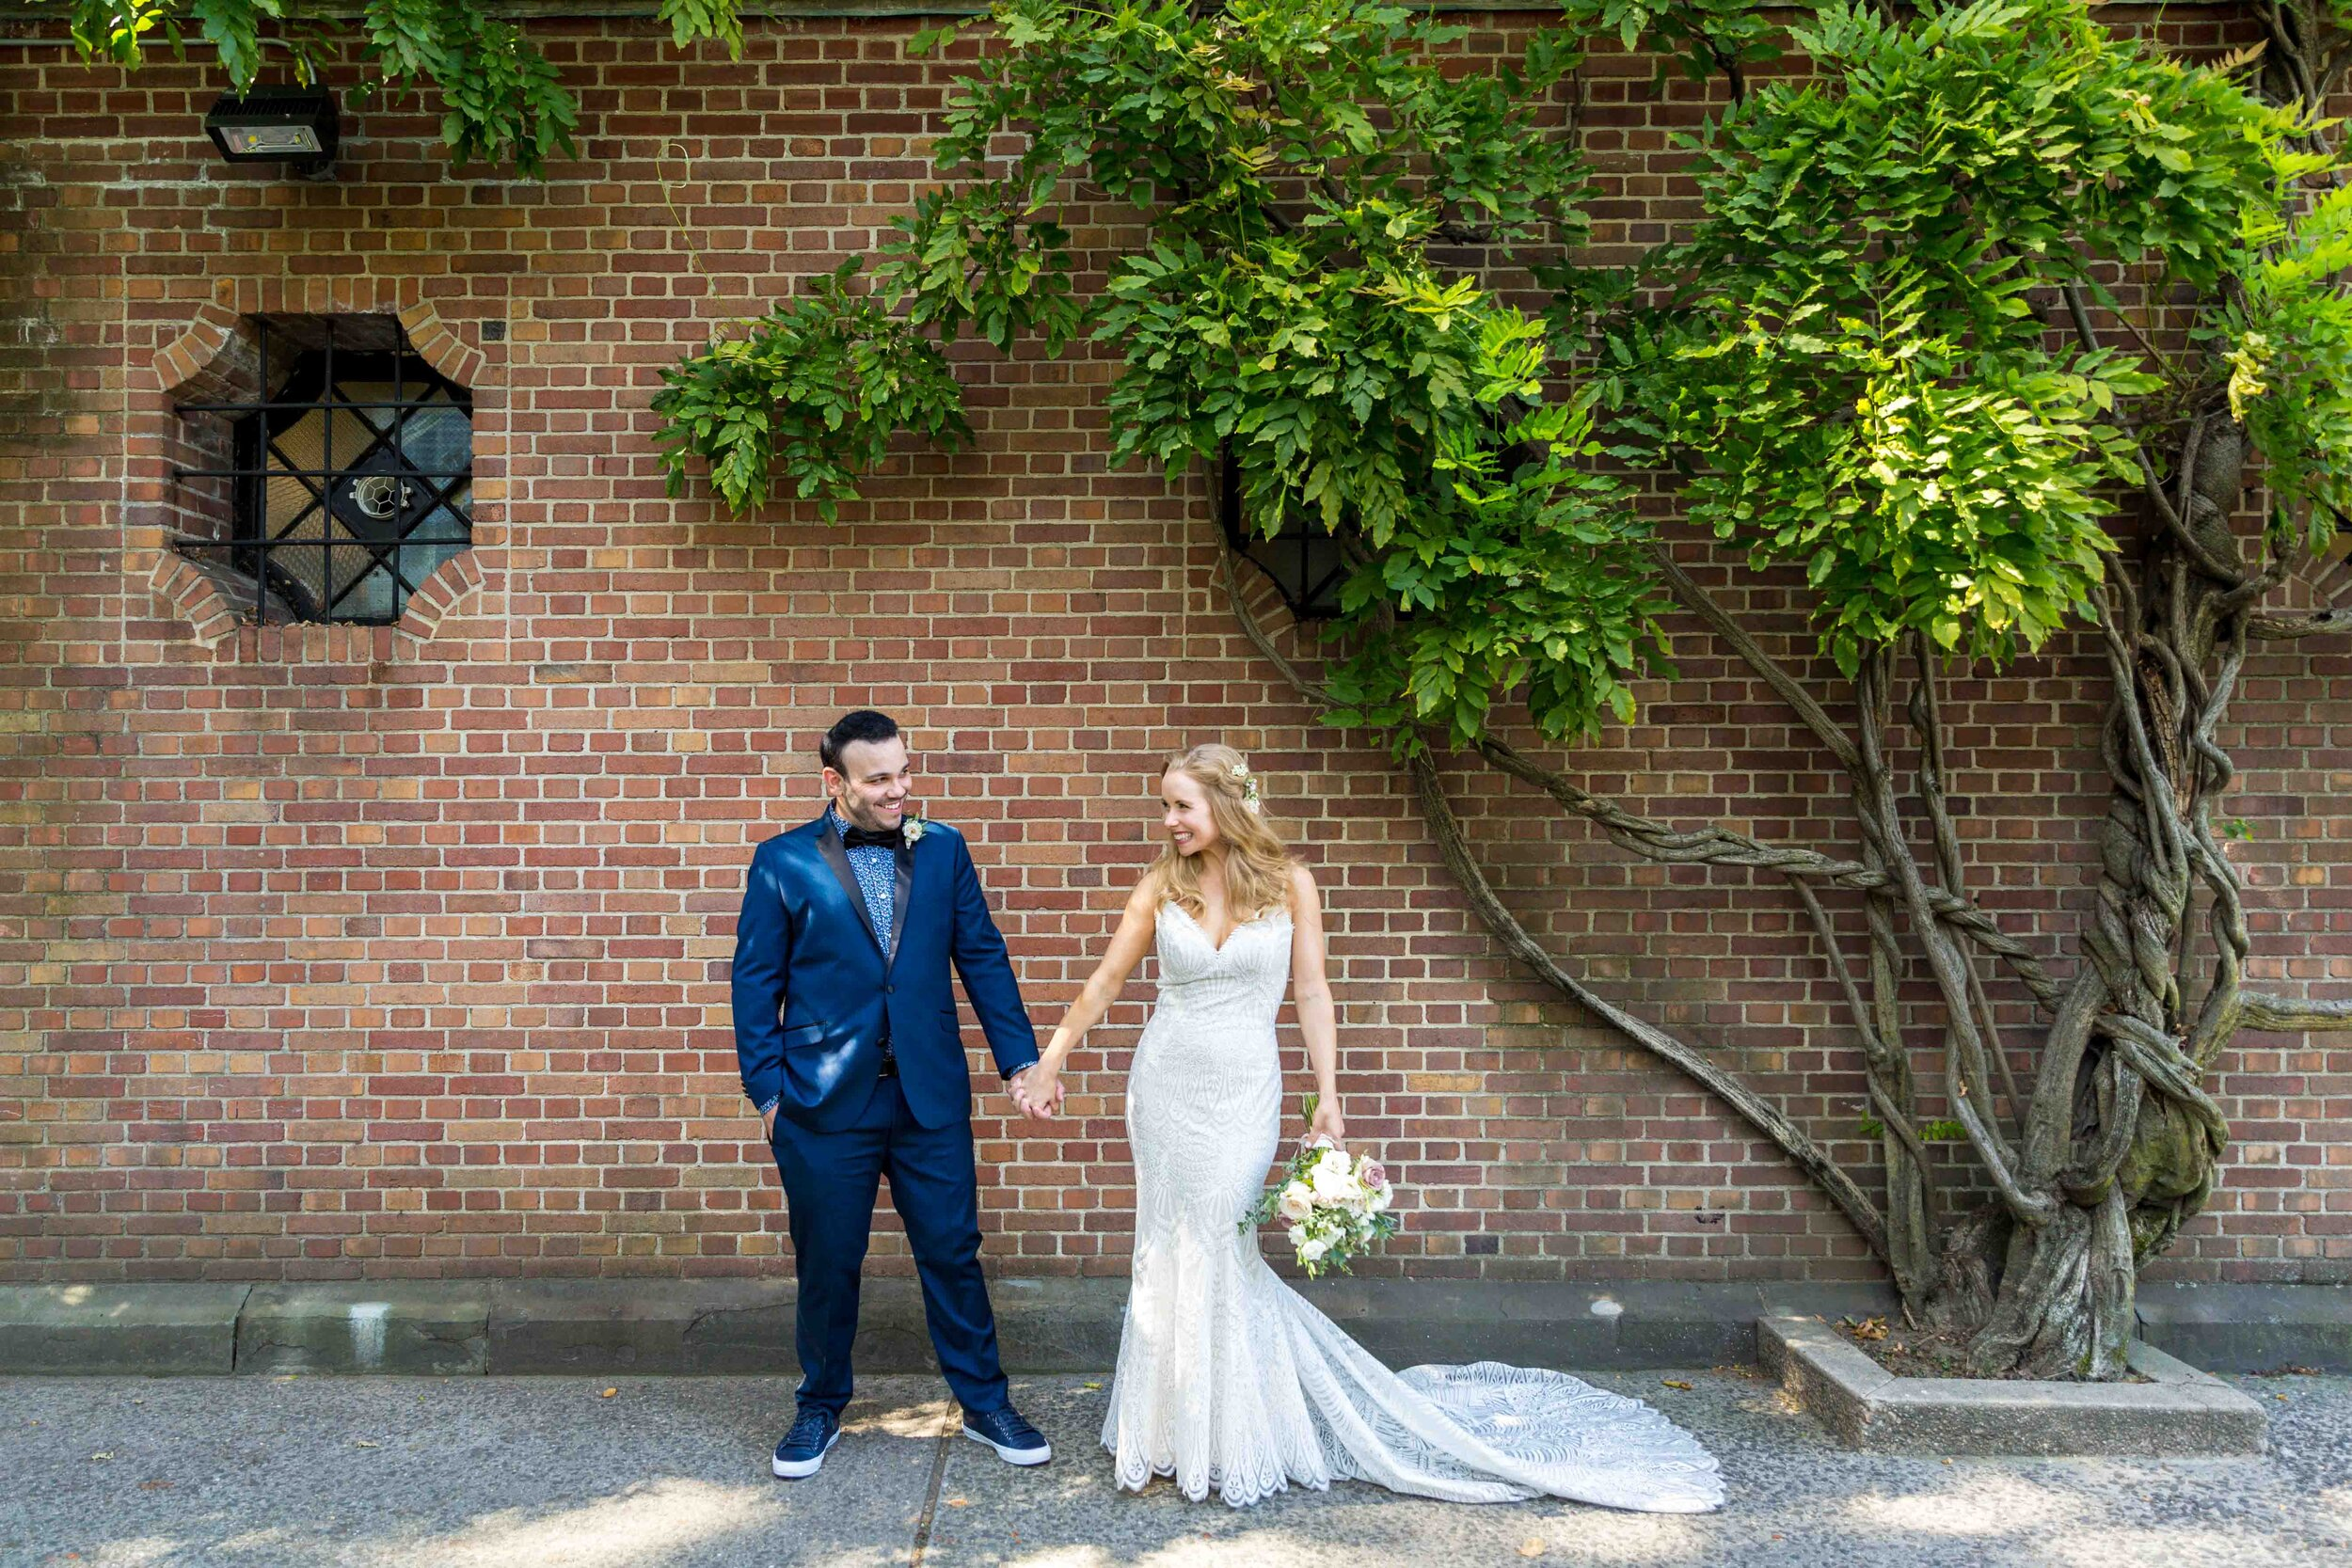 Central Park Conservatory Garden Wedding NYC New York City Photographer